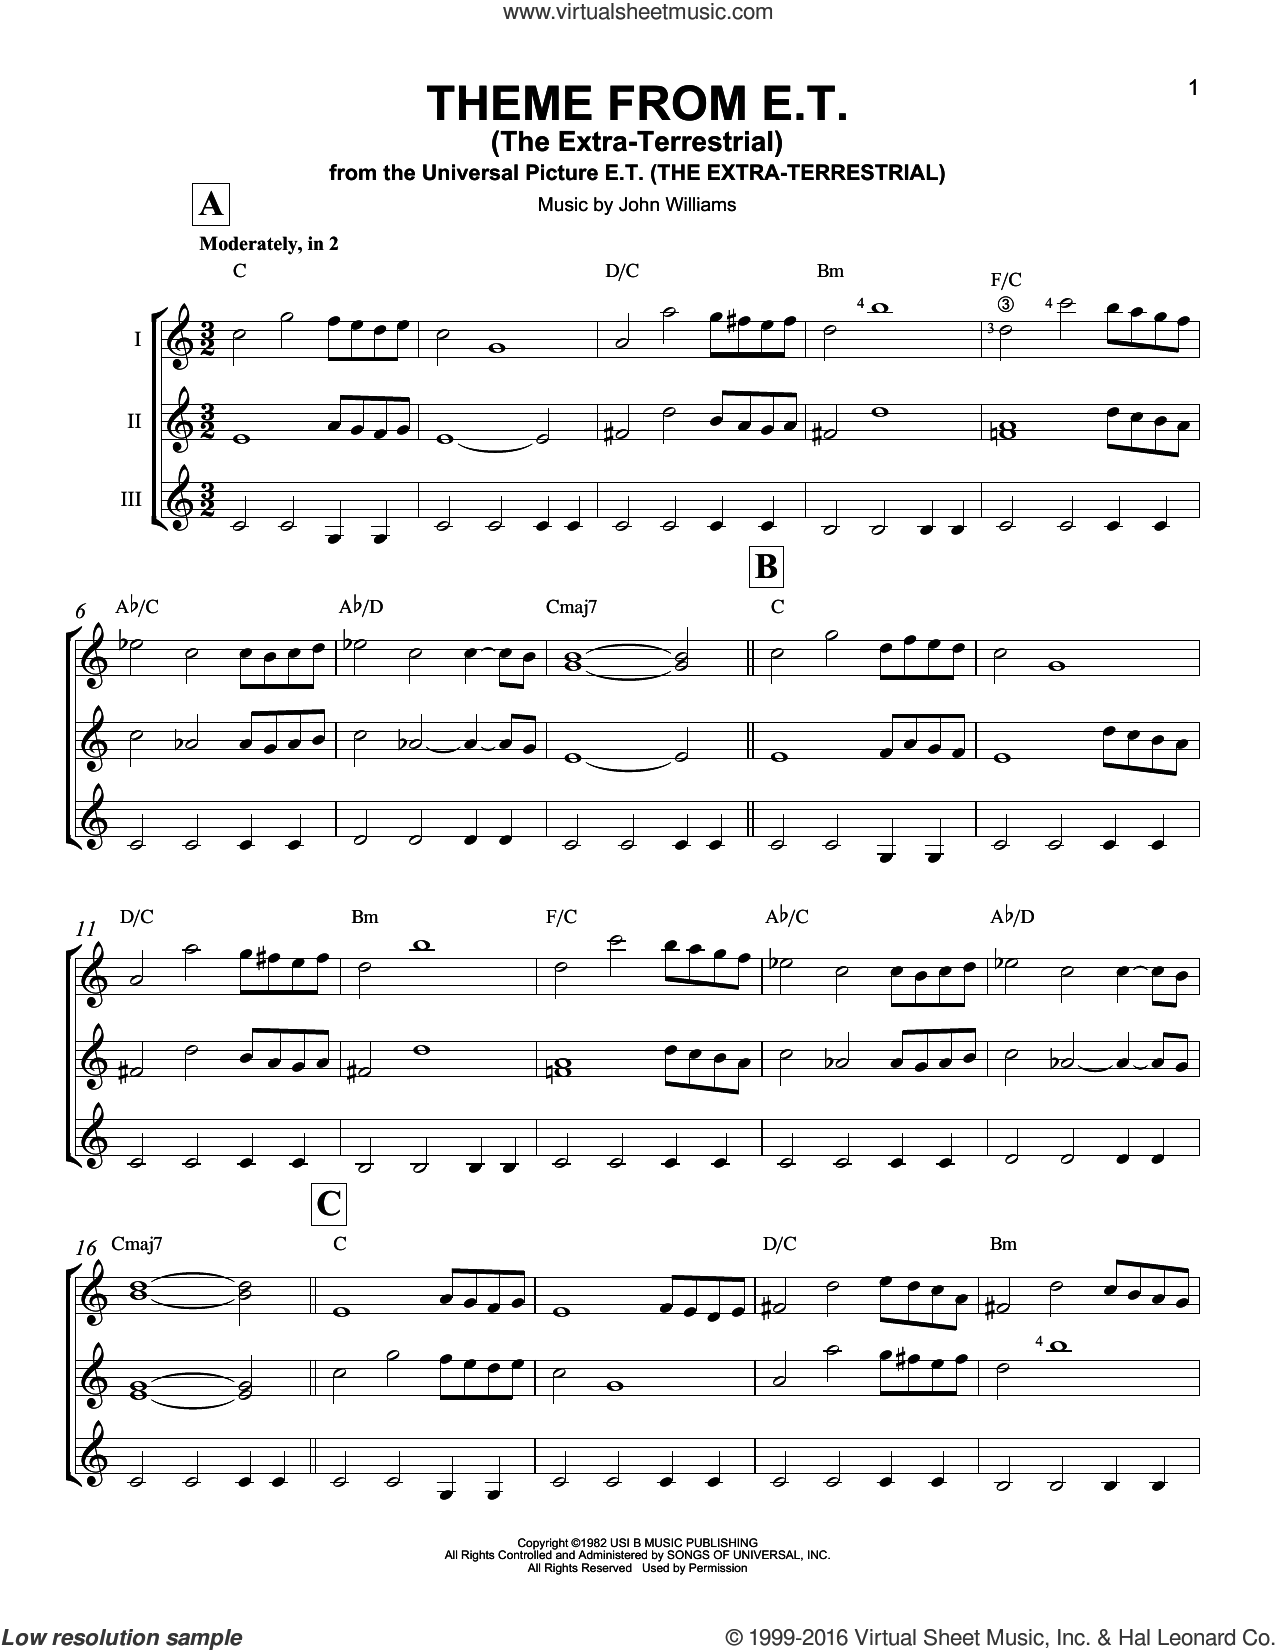 Theme From E.T. (The Extra-Terrestrial) sheet music for guitar ensemble by John Williams, intermediate guitar ensemble. Score Image Preview.